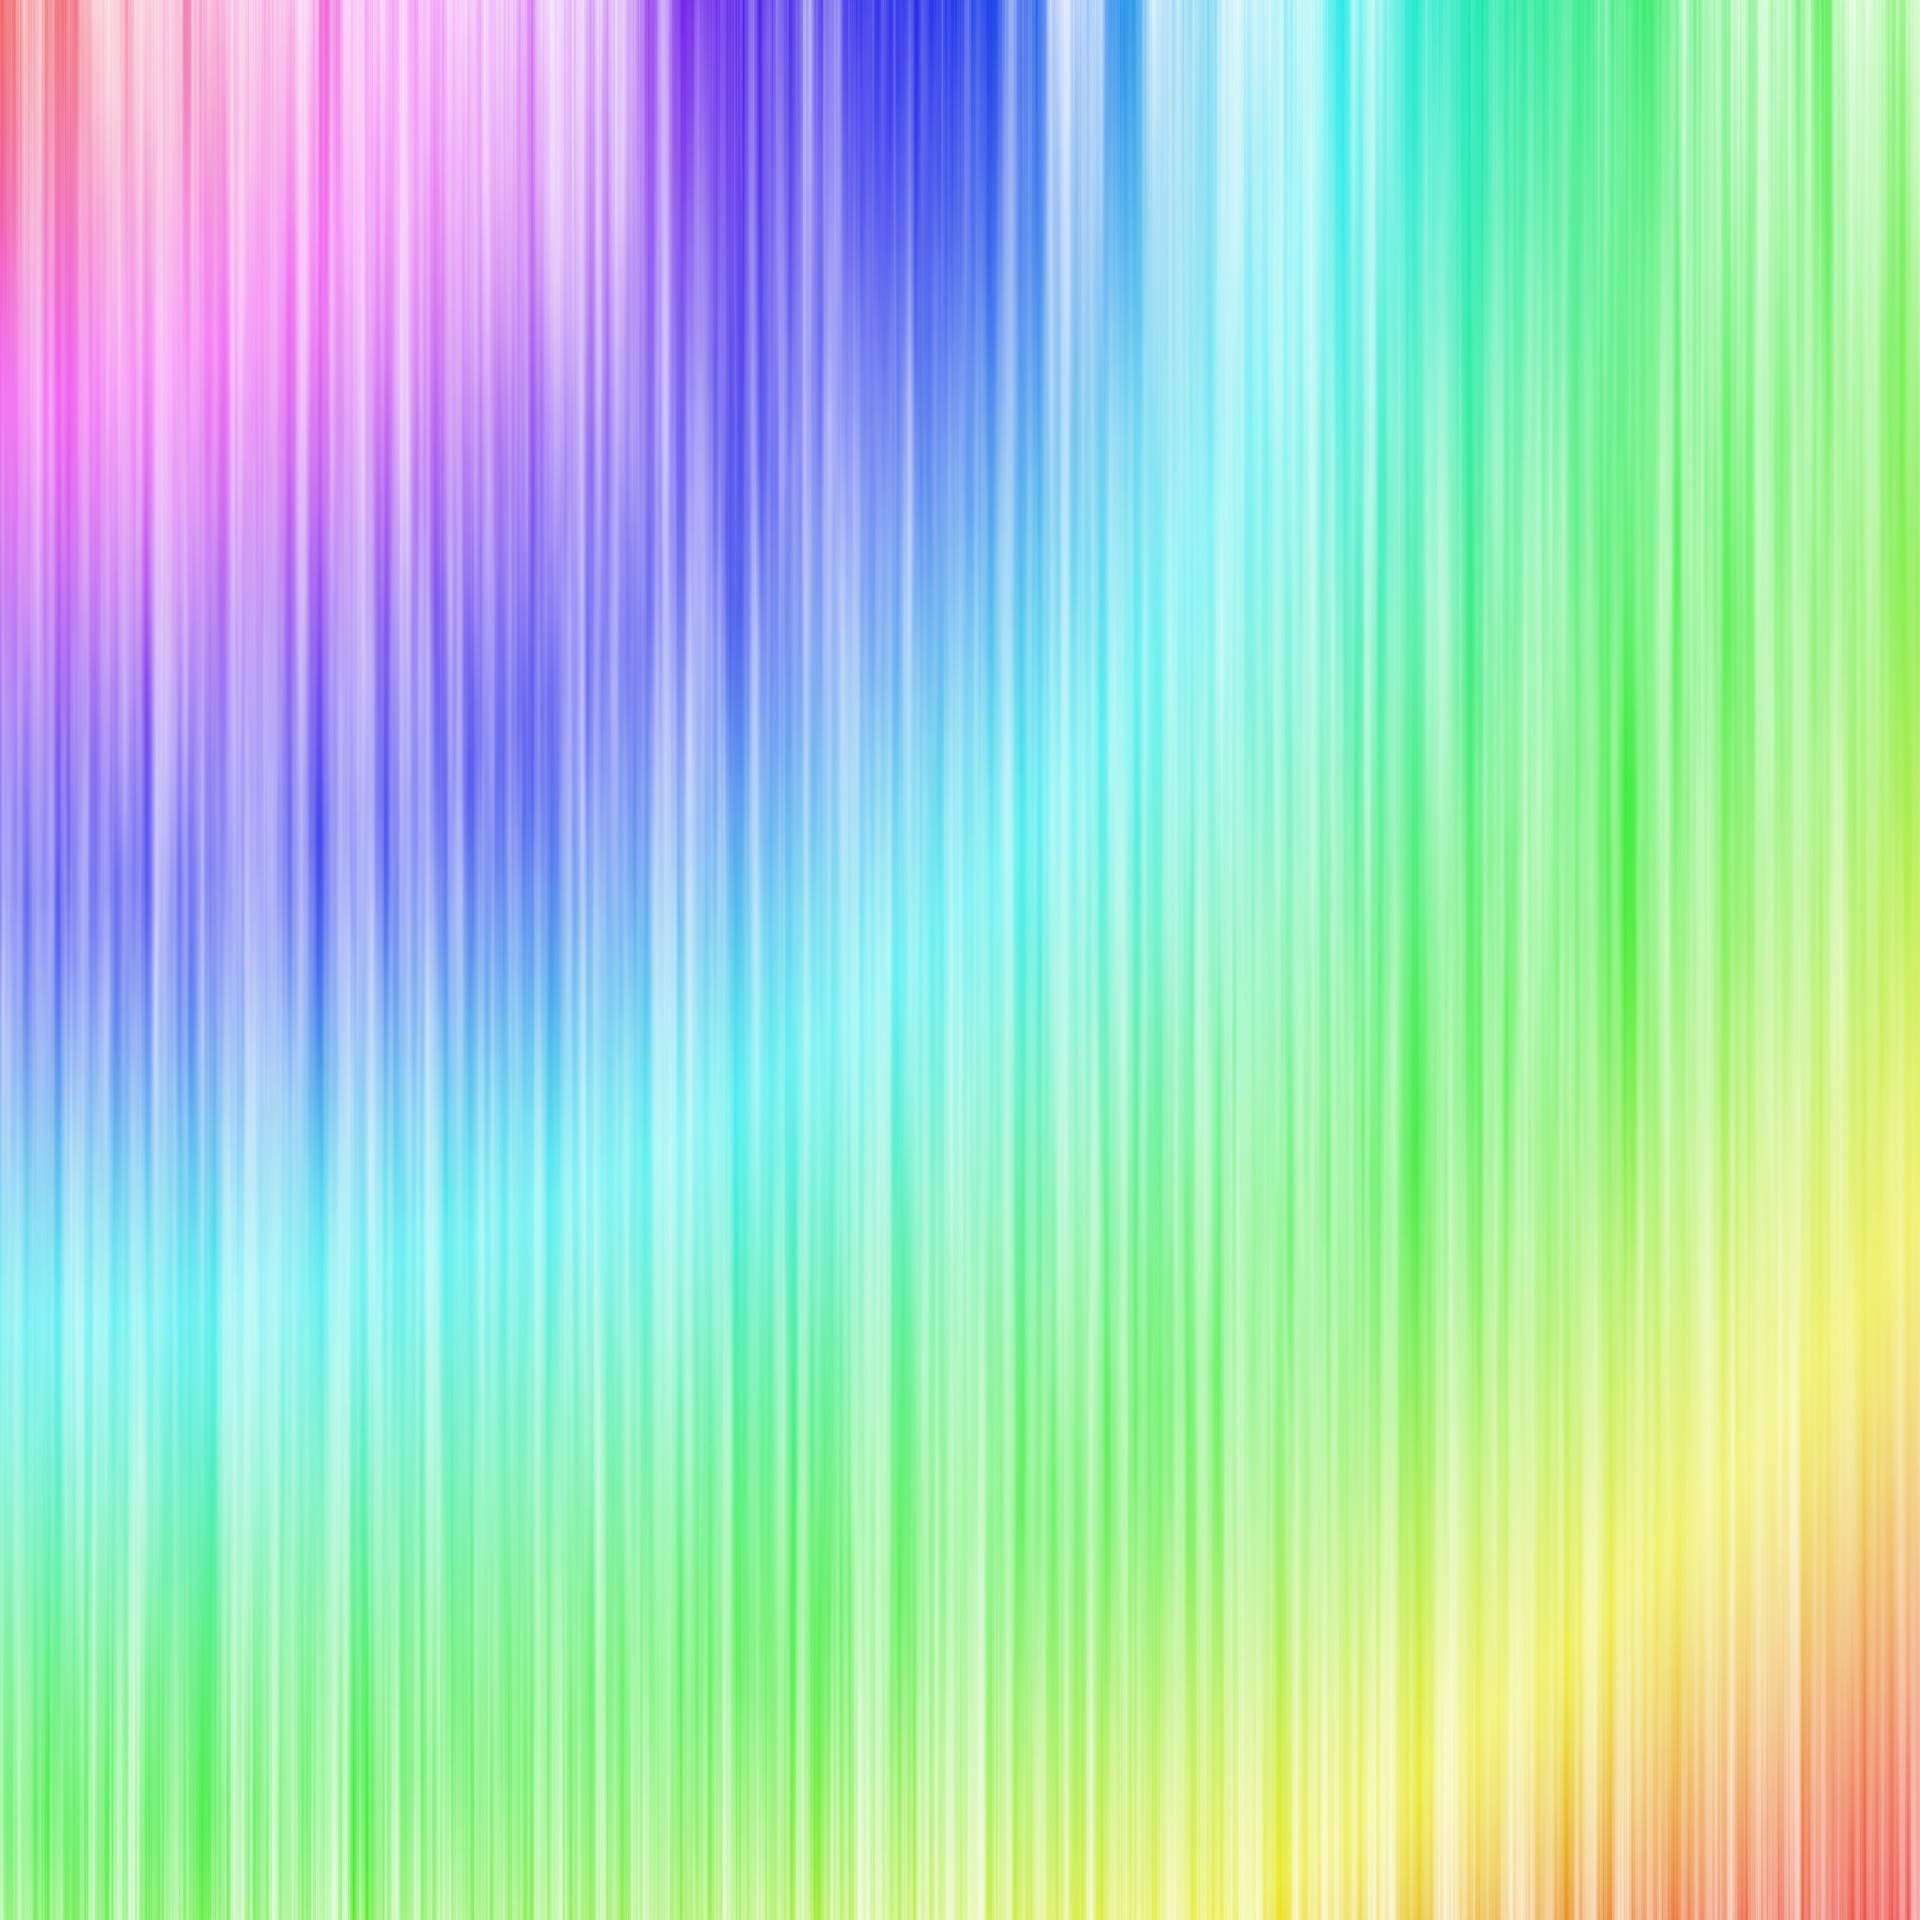 Stripes Striped Wallpaper Background Rainbow Free Photo